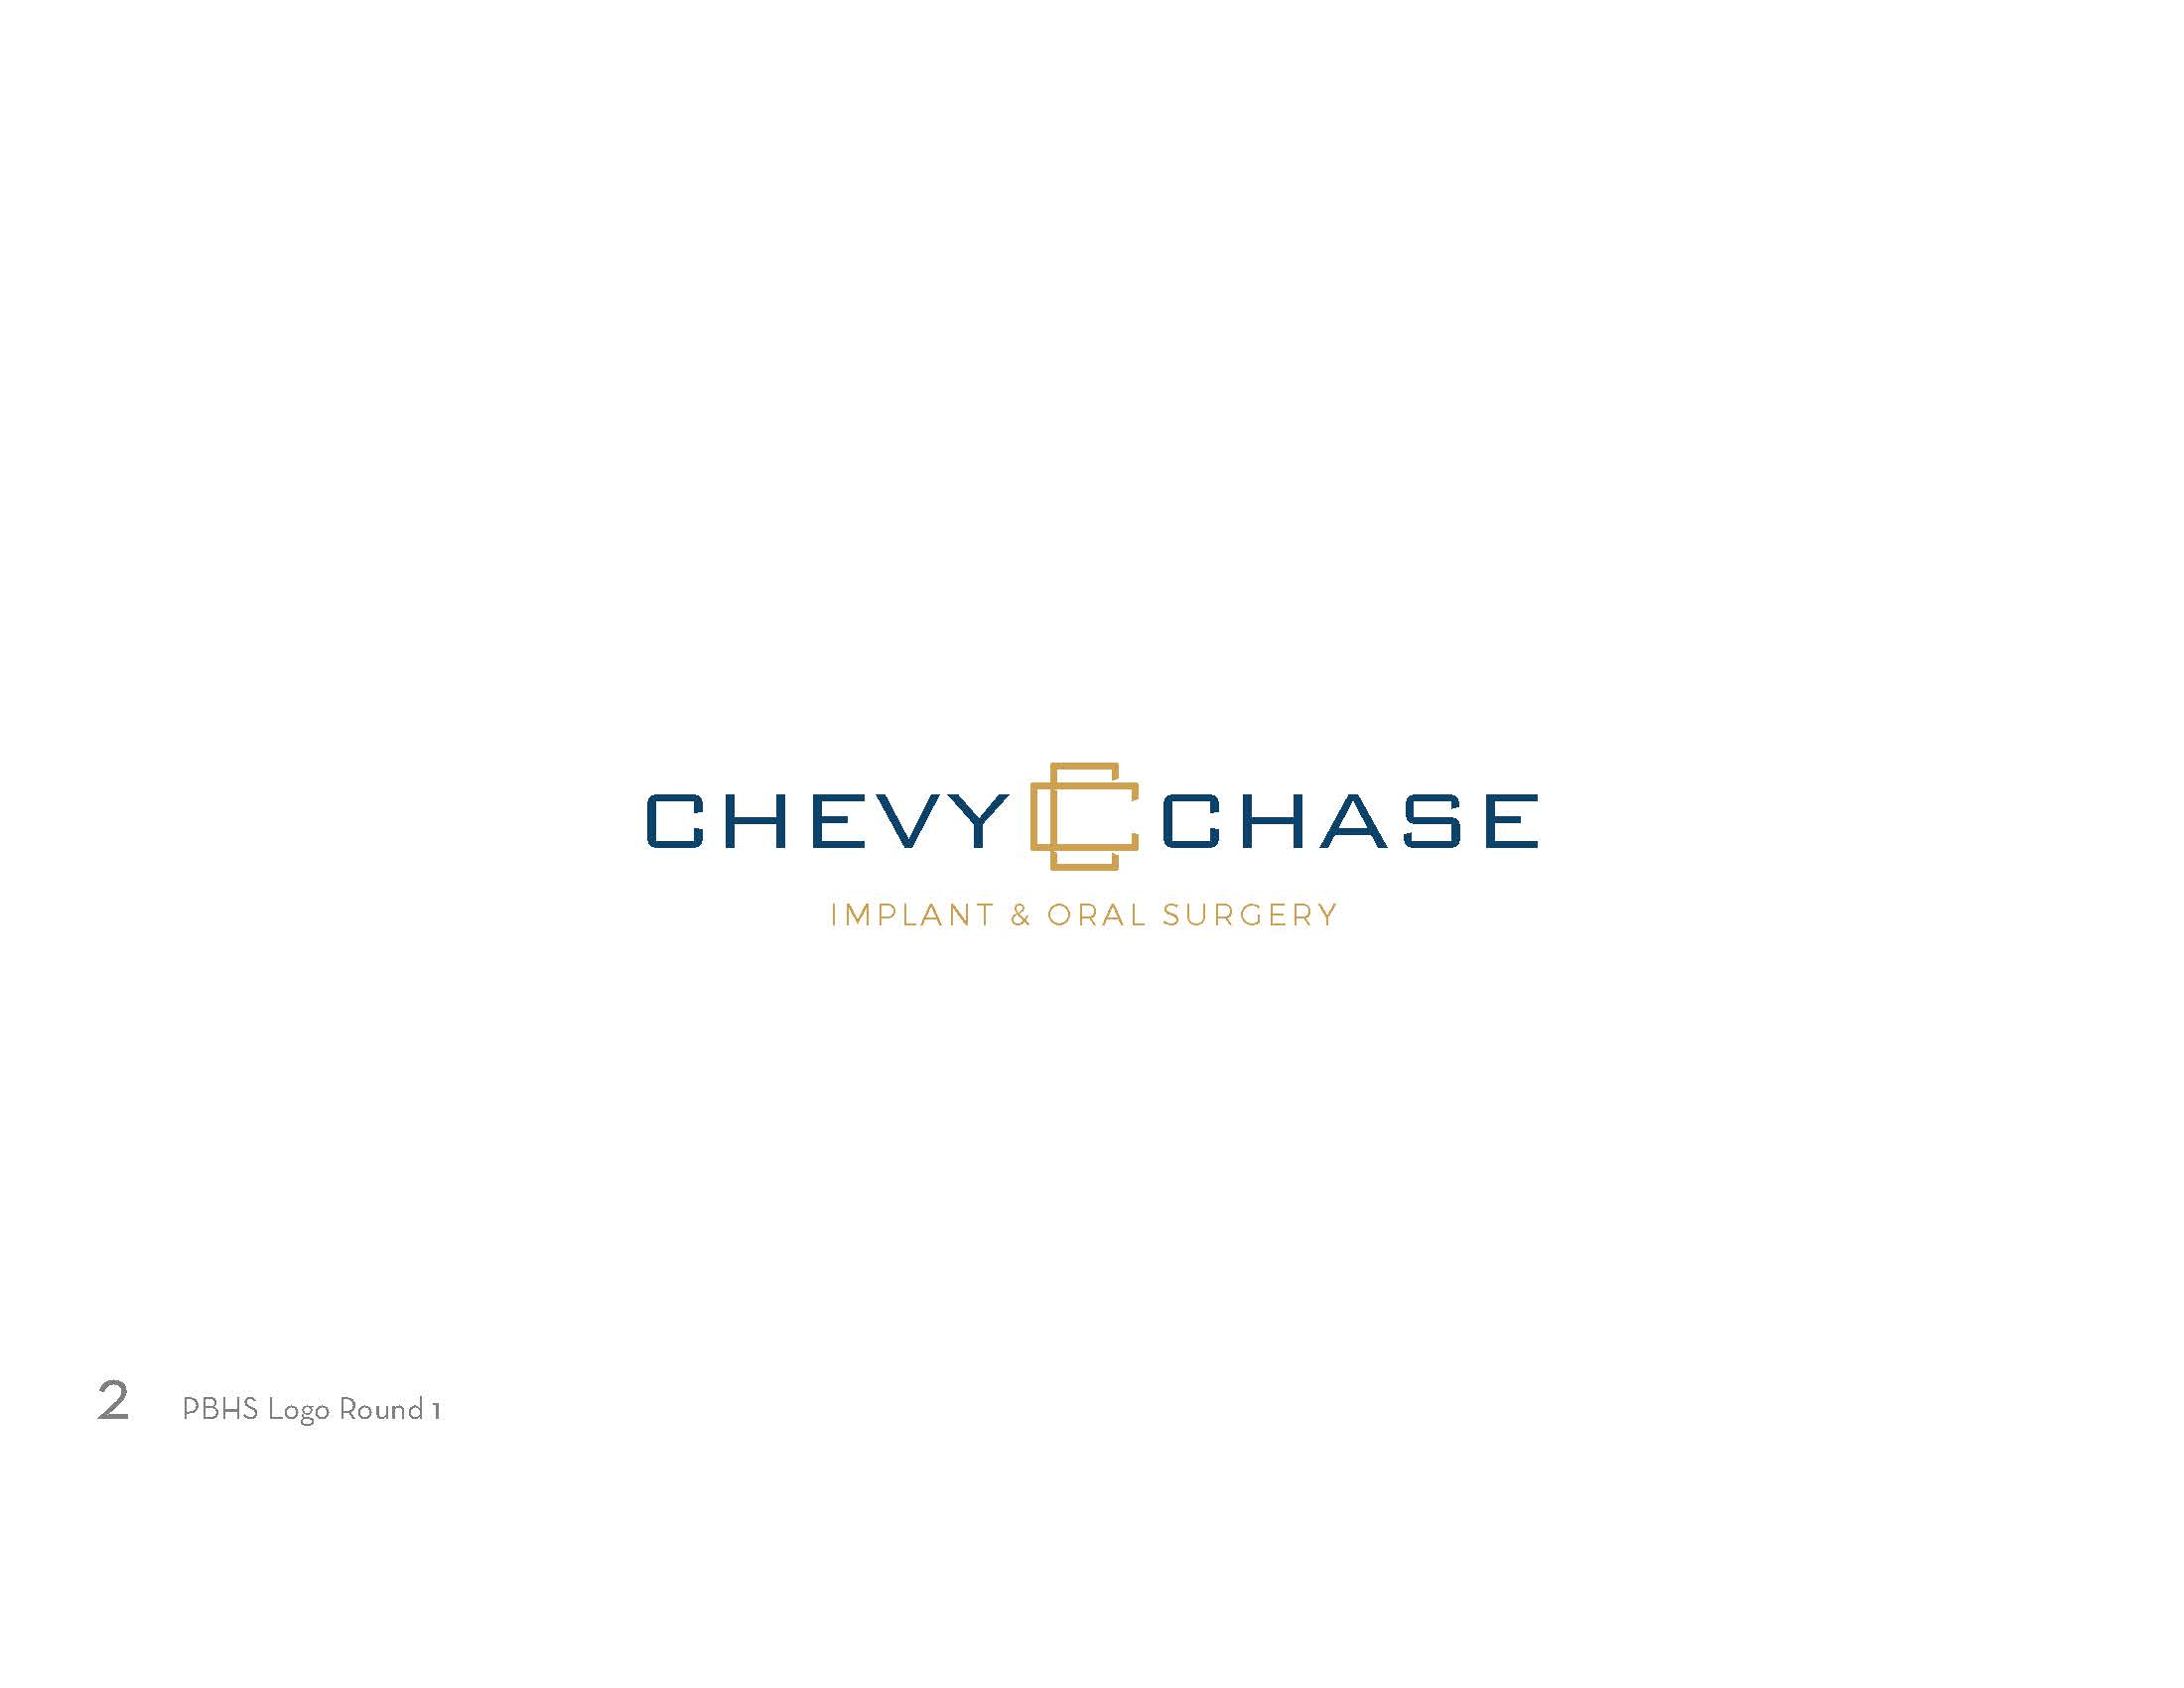 Chevy Chase Implant & Oral Surgery reviews | Oral Surgeons at 5550 Friendship Blvd Suite 250 - Chevy Chase MD